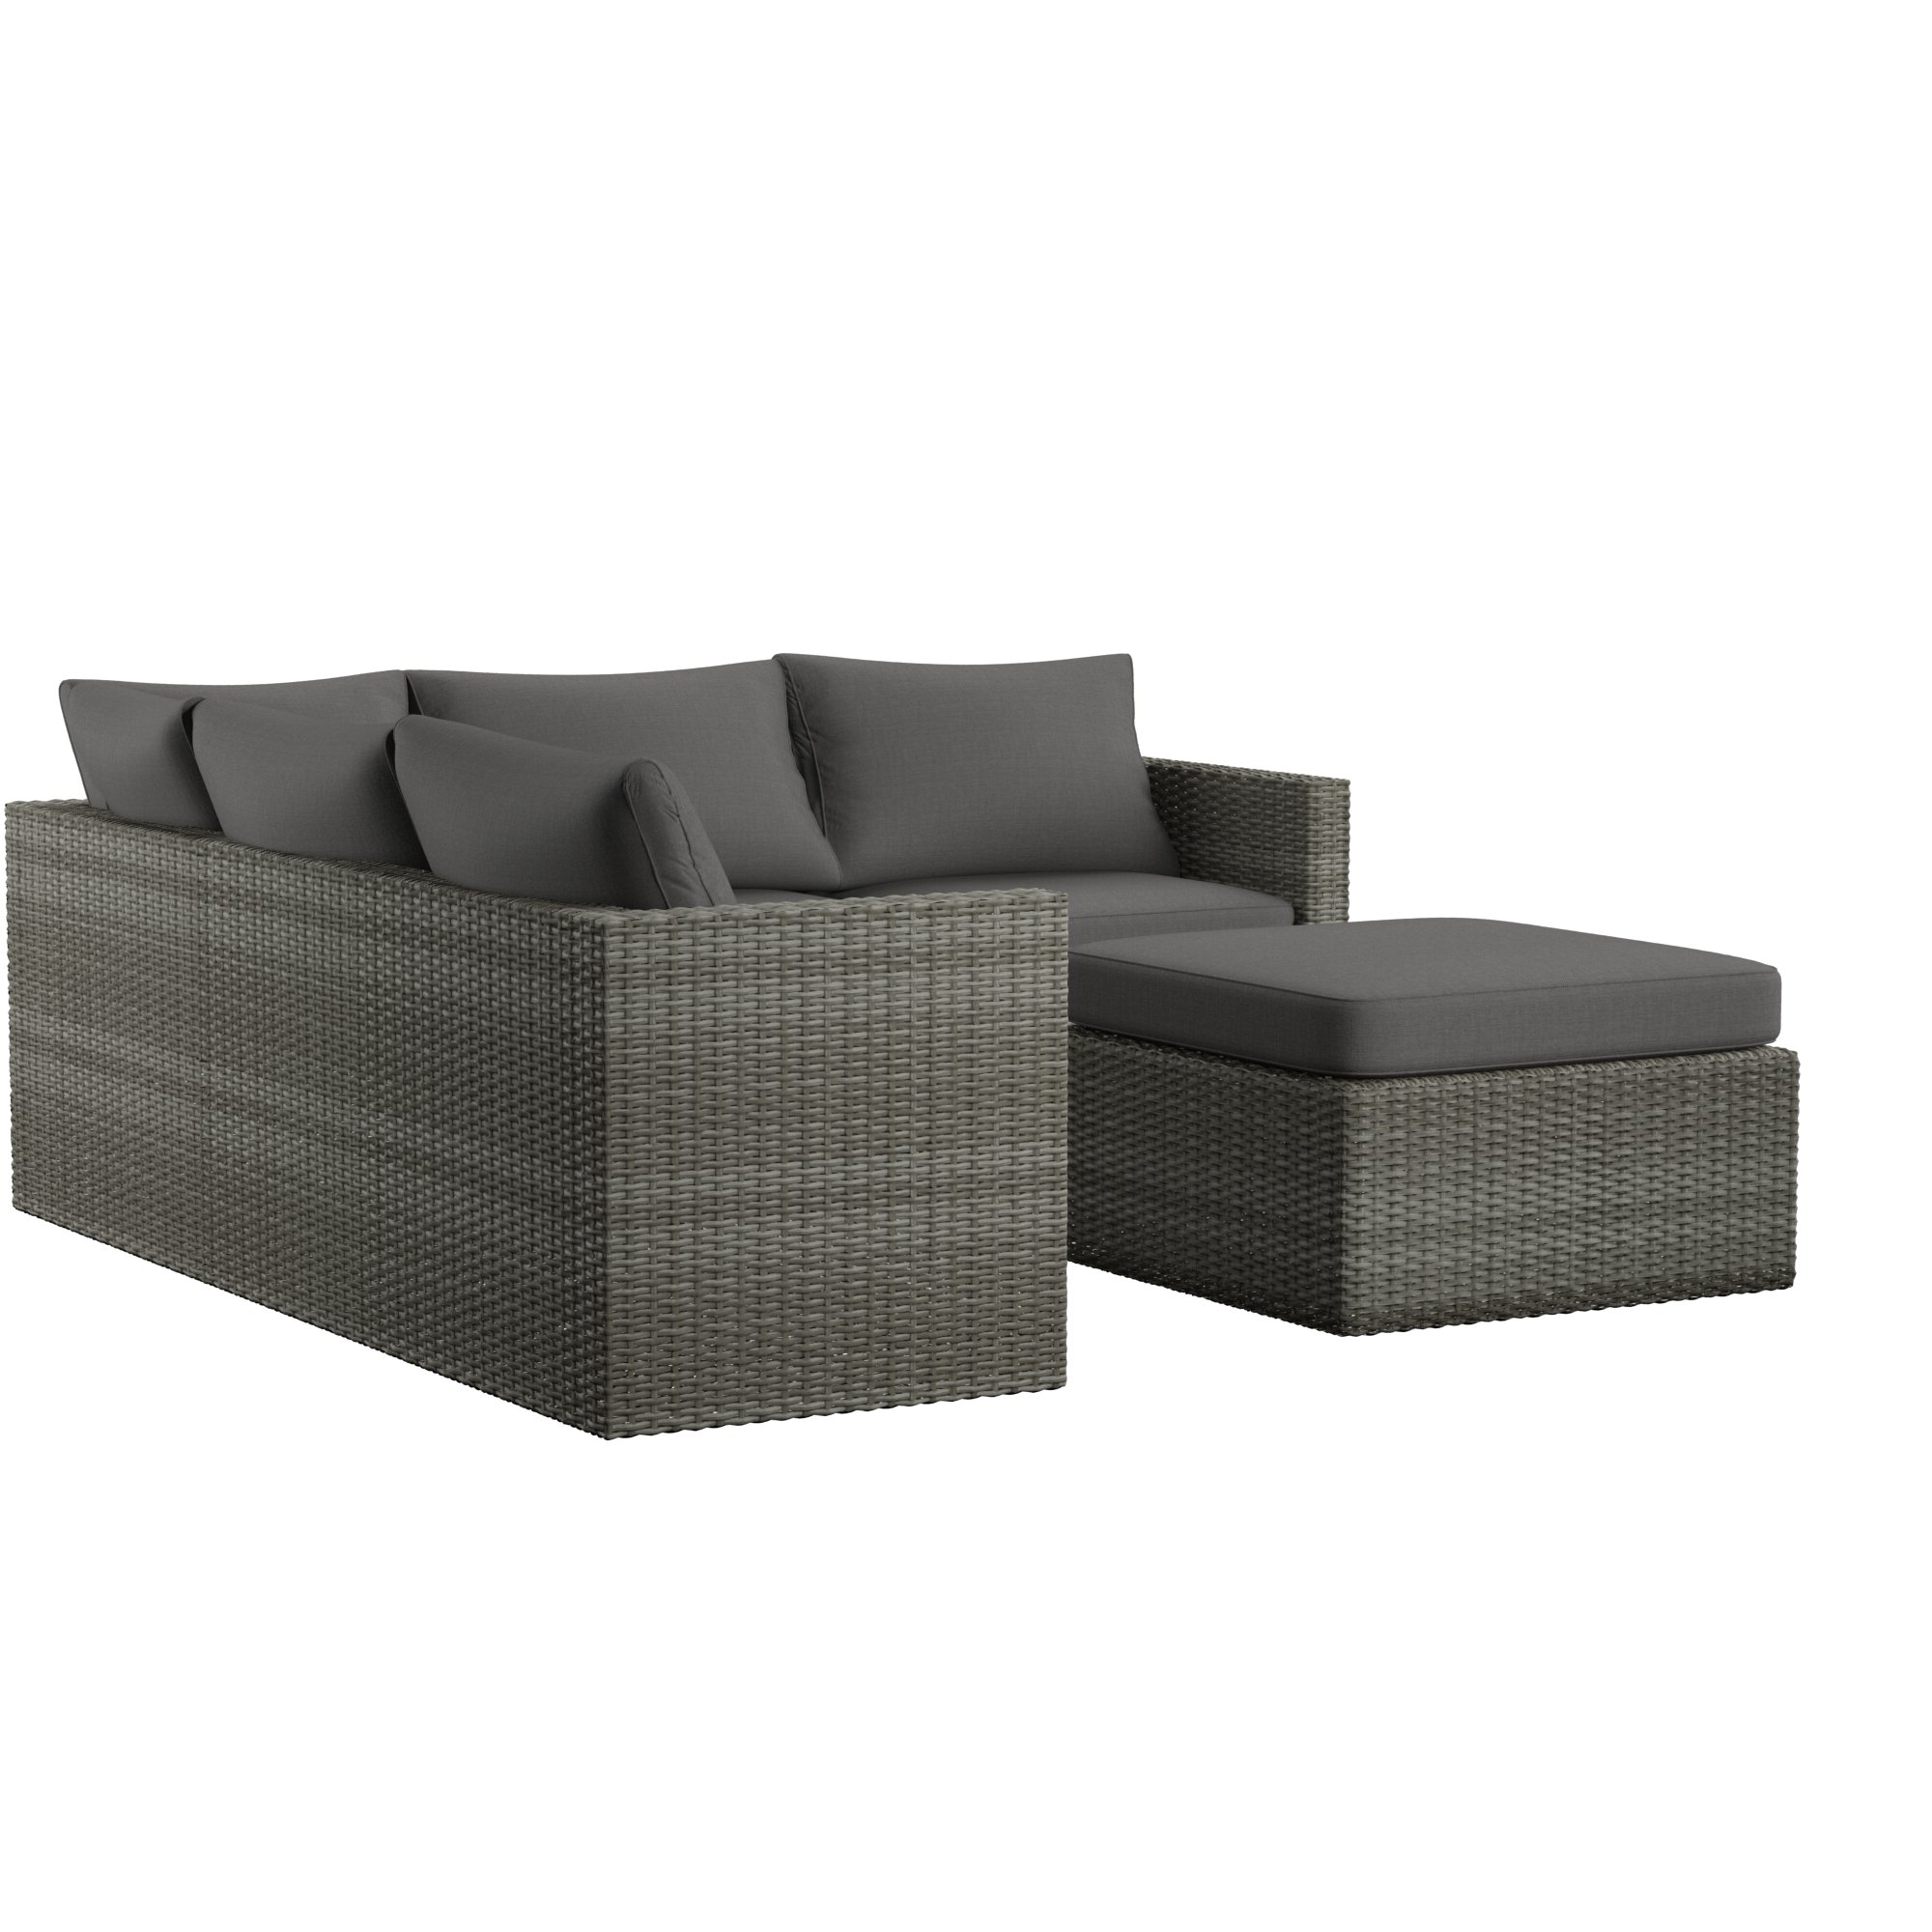 Popular Camak Patio Sofas With Cushions Inside Lorentzen Patio Sectional With Cushions (View 17 of 20)